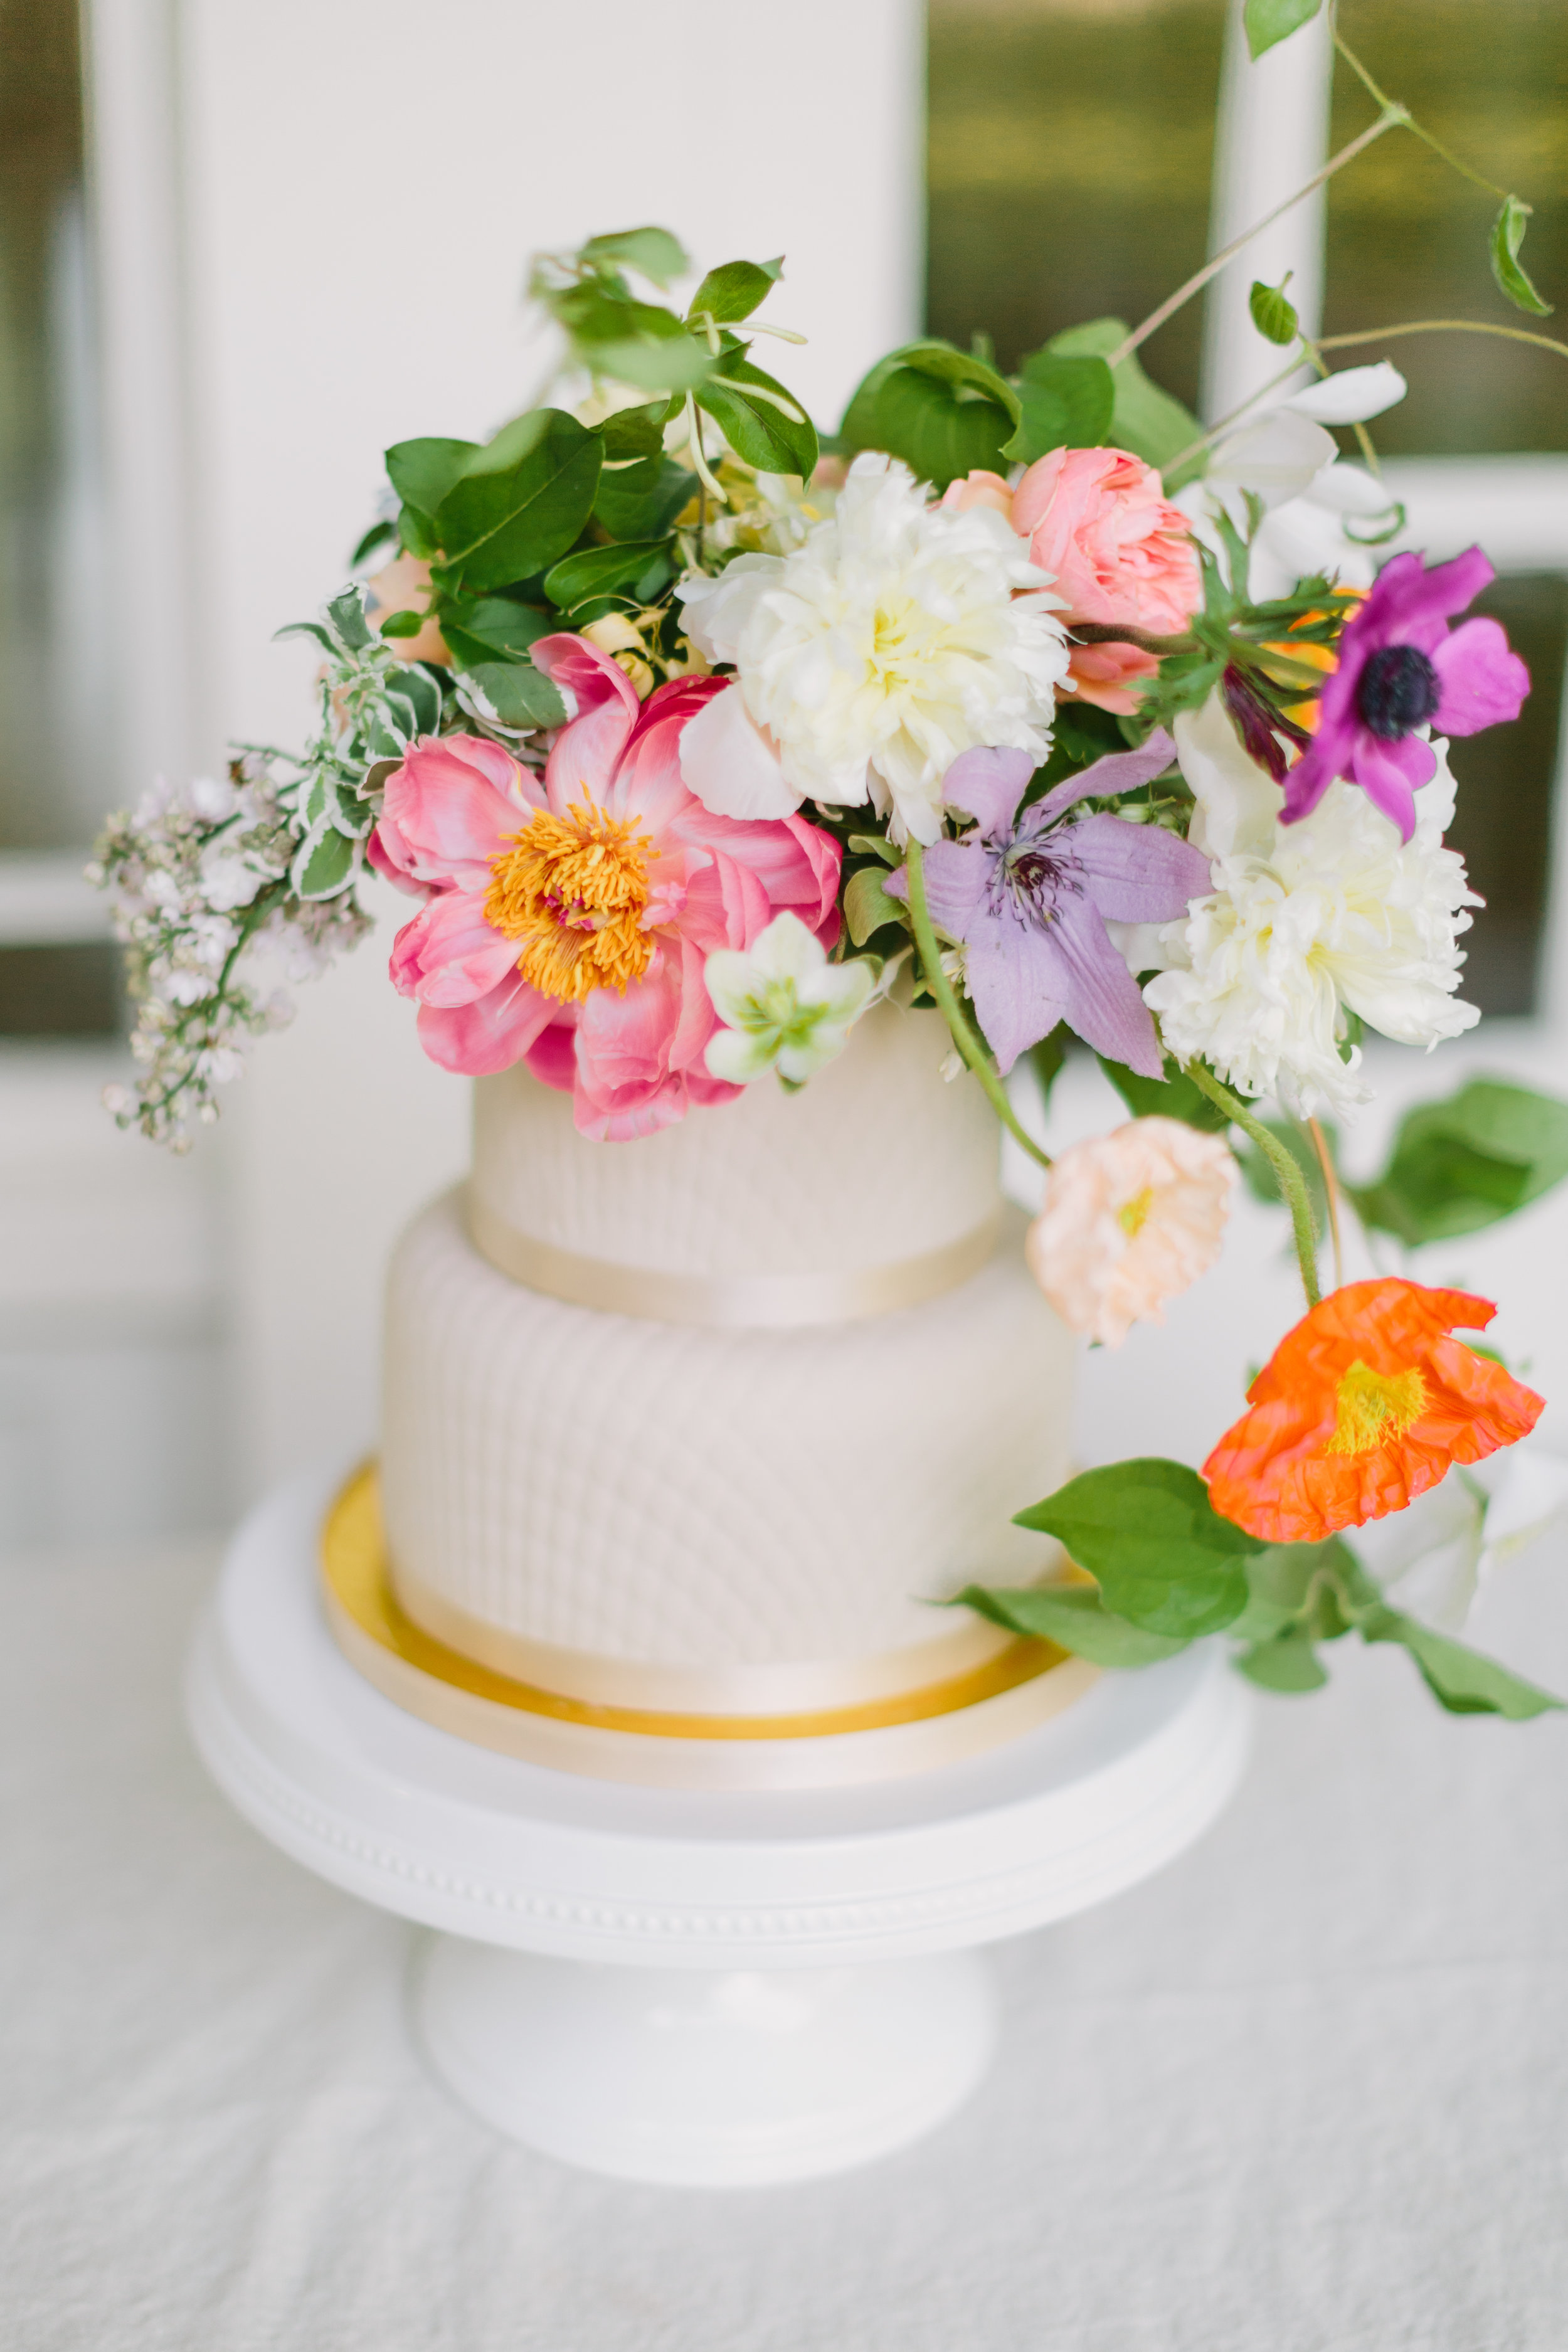 jessica-zimmerman-events-colorful-summer-wedding-cake.JPG